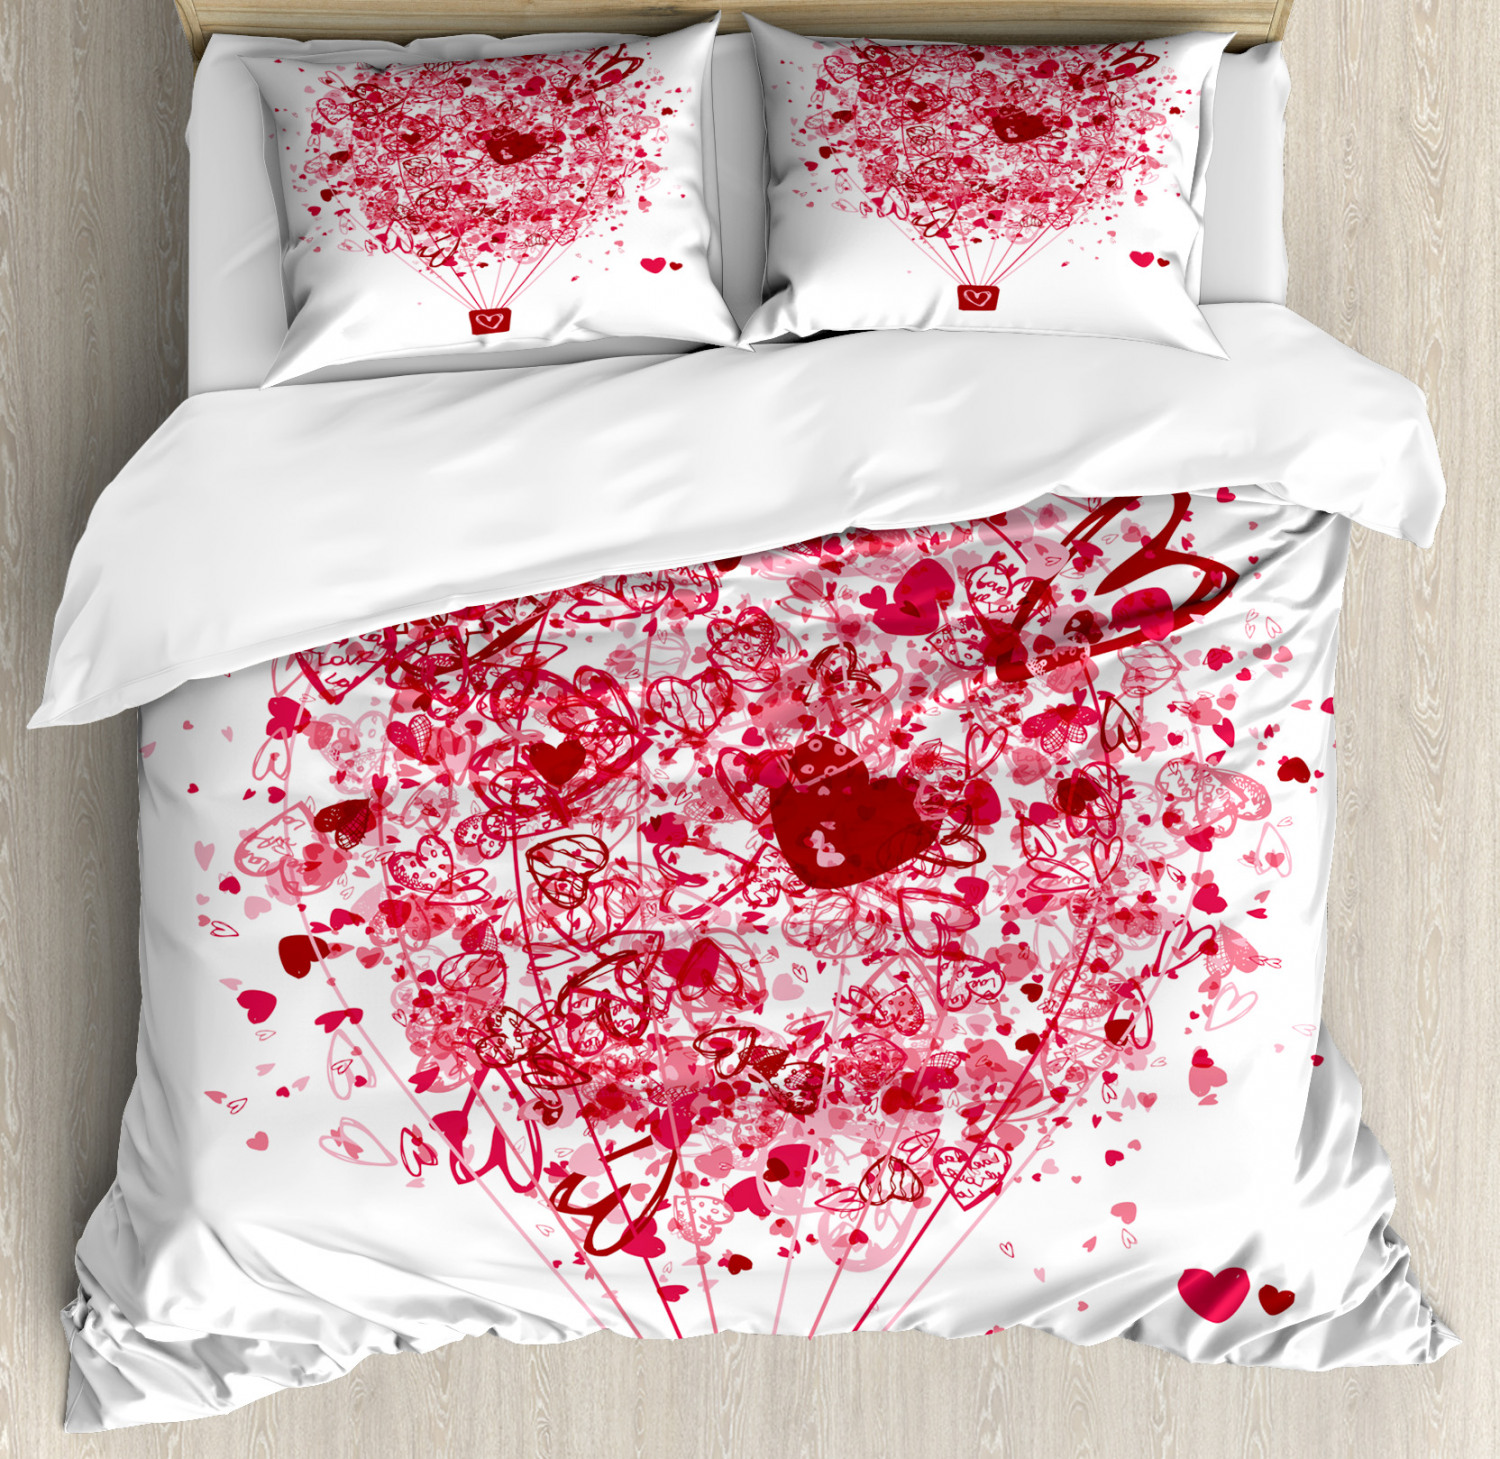 pink and white duvet cover set twin queen king sizes with pillow shams bedding ebay. Black Bedroom Furniture Sets. Home Design Ideas